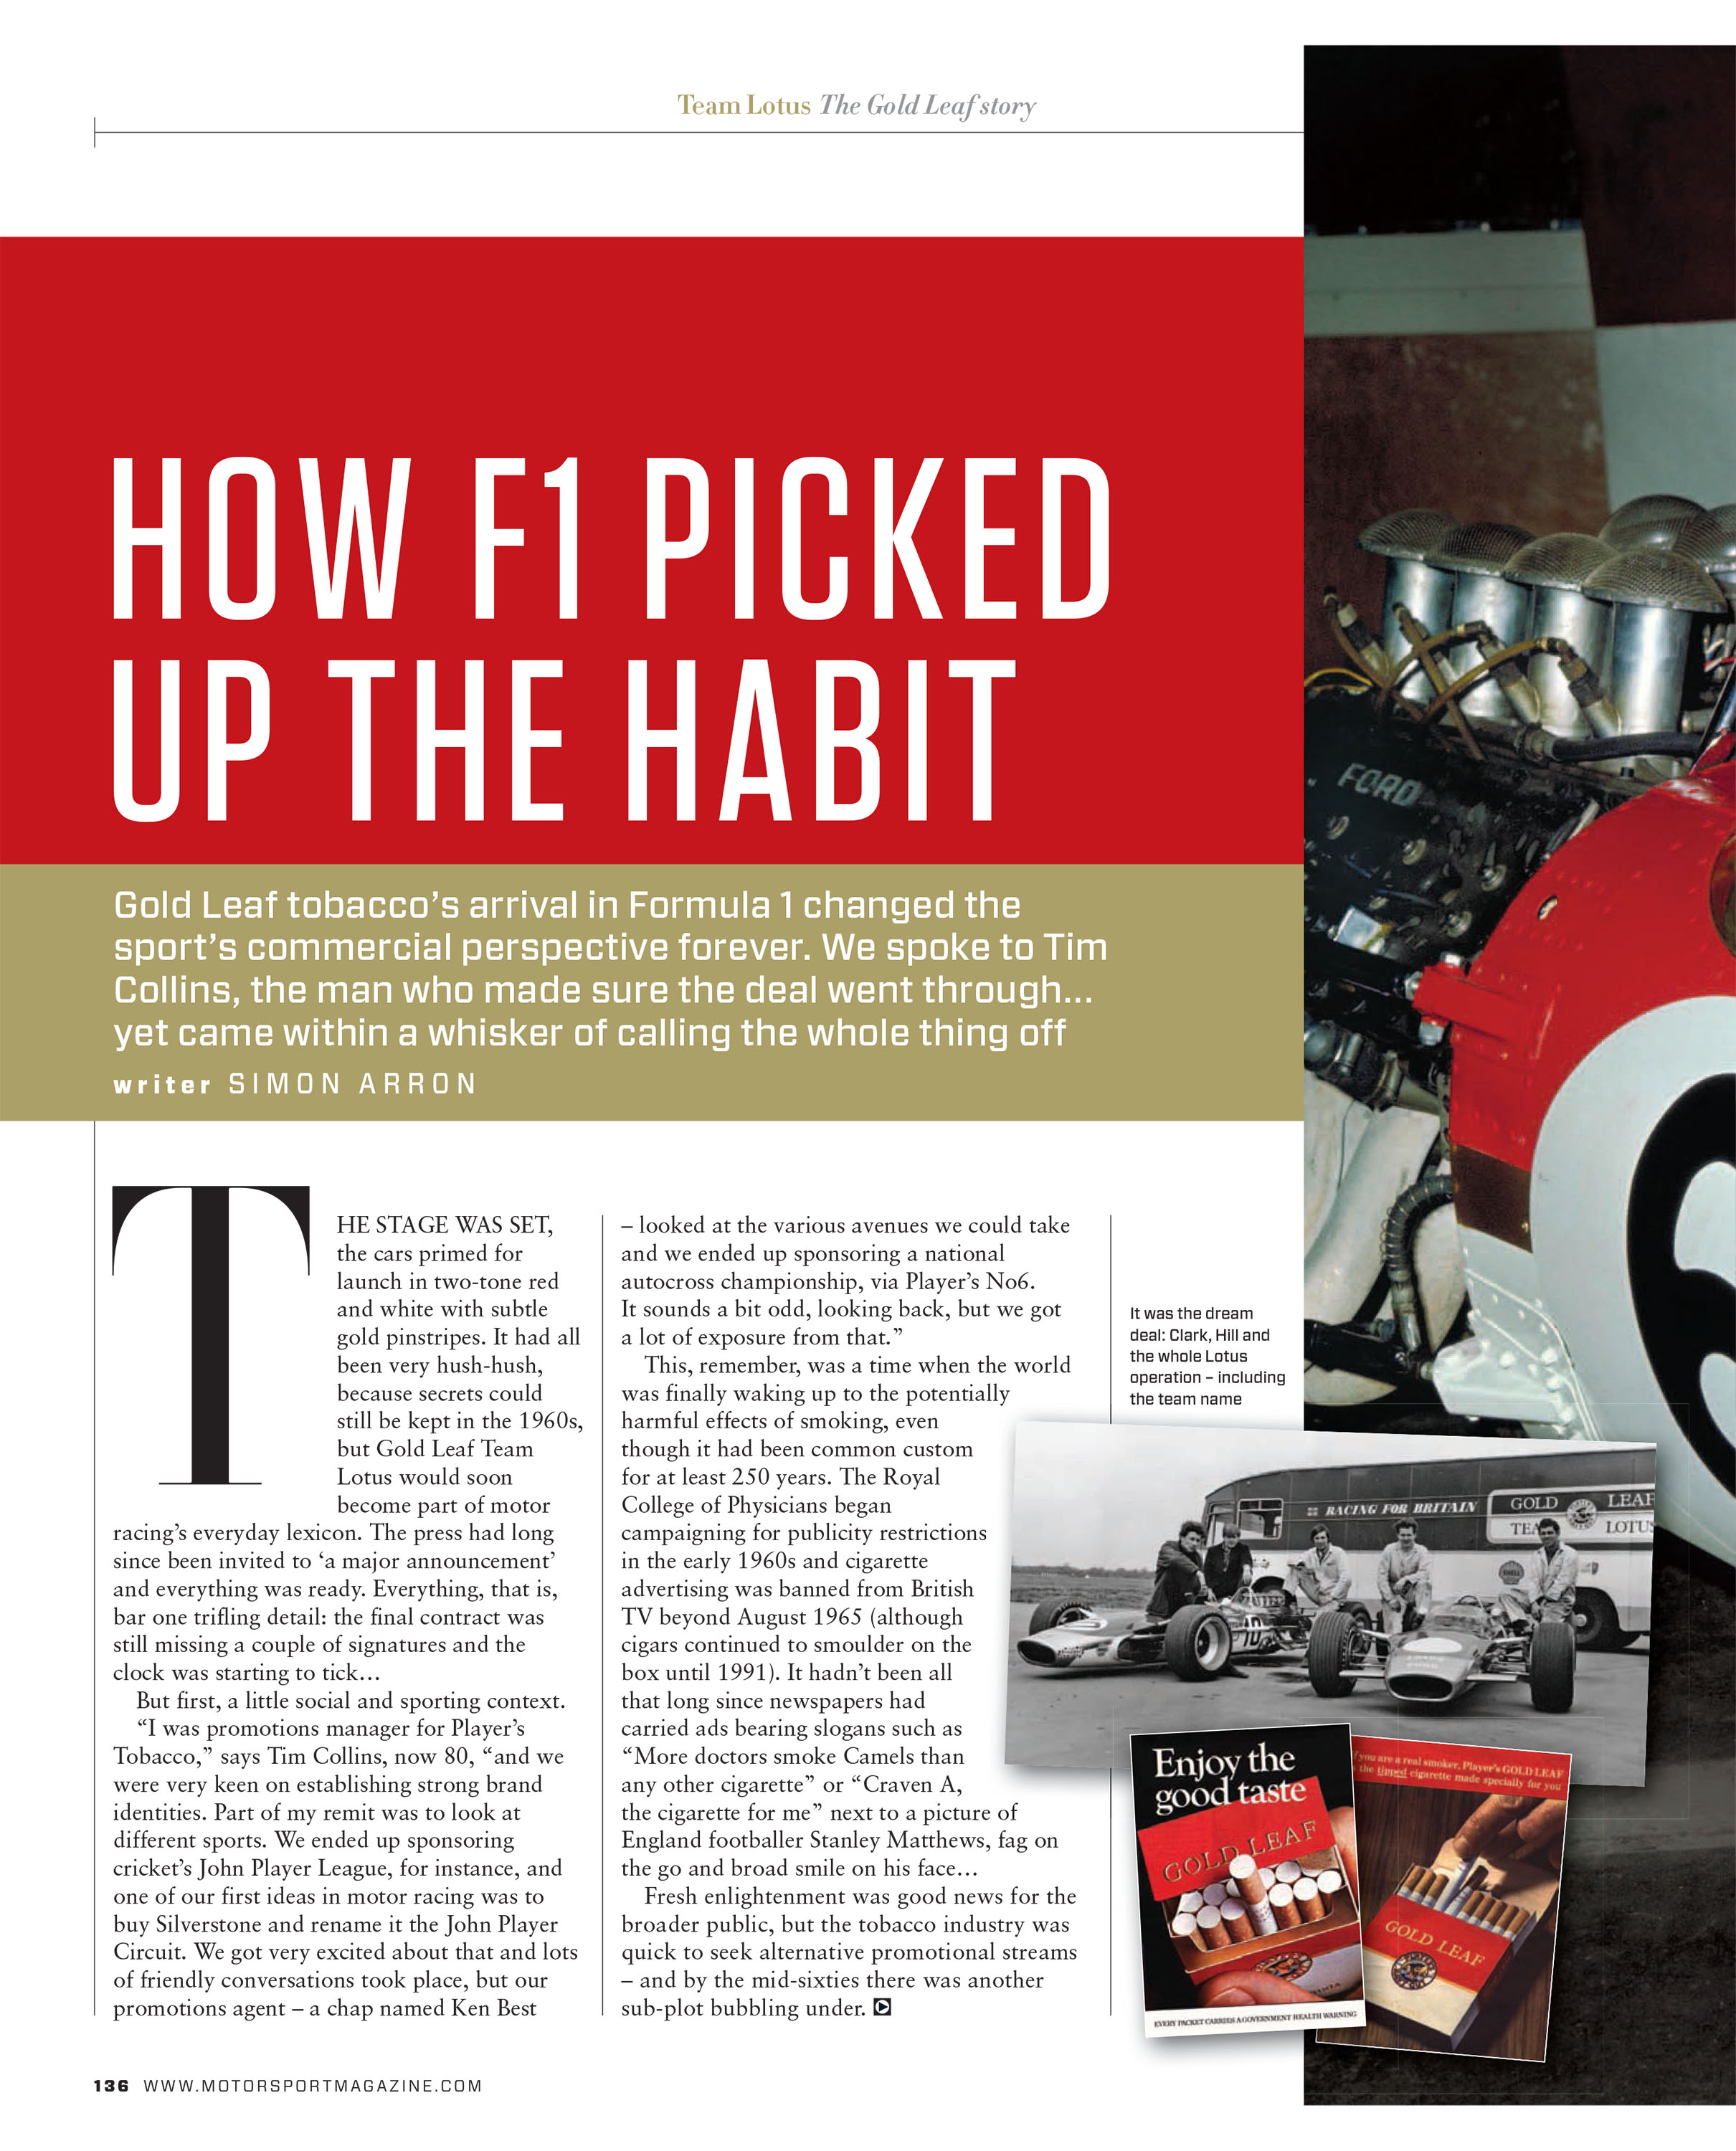 How F1 picked up the habit image